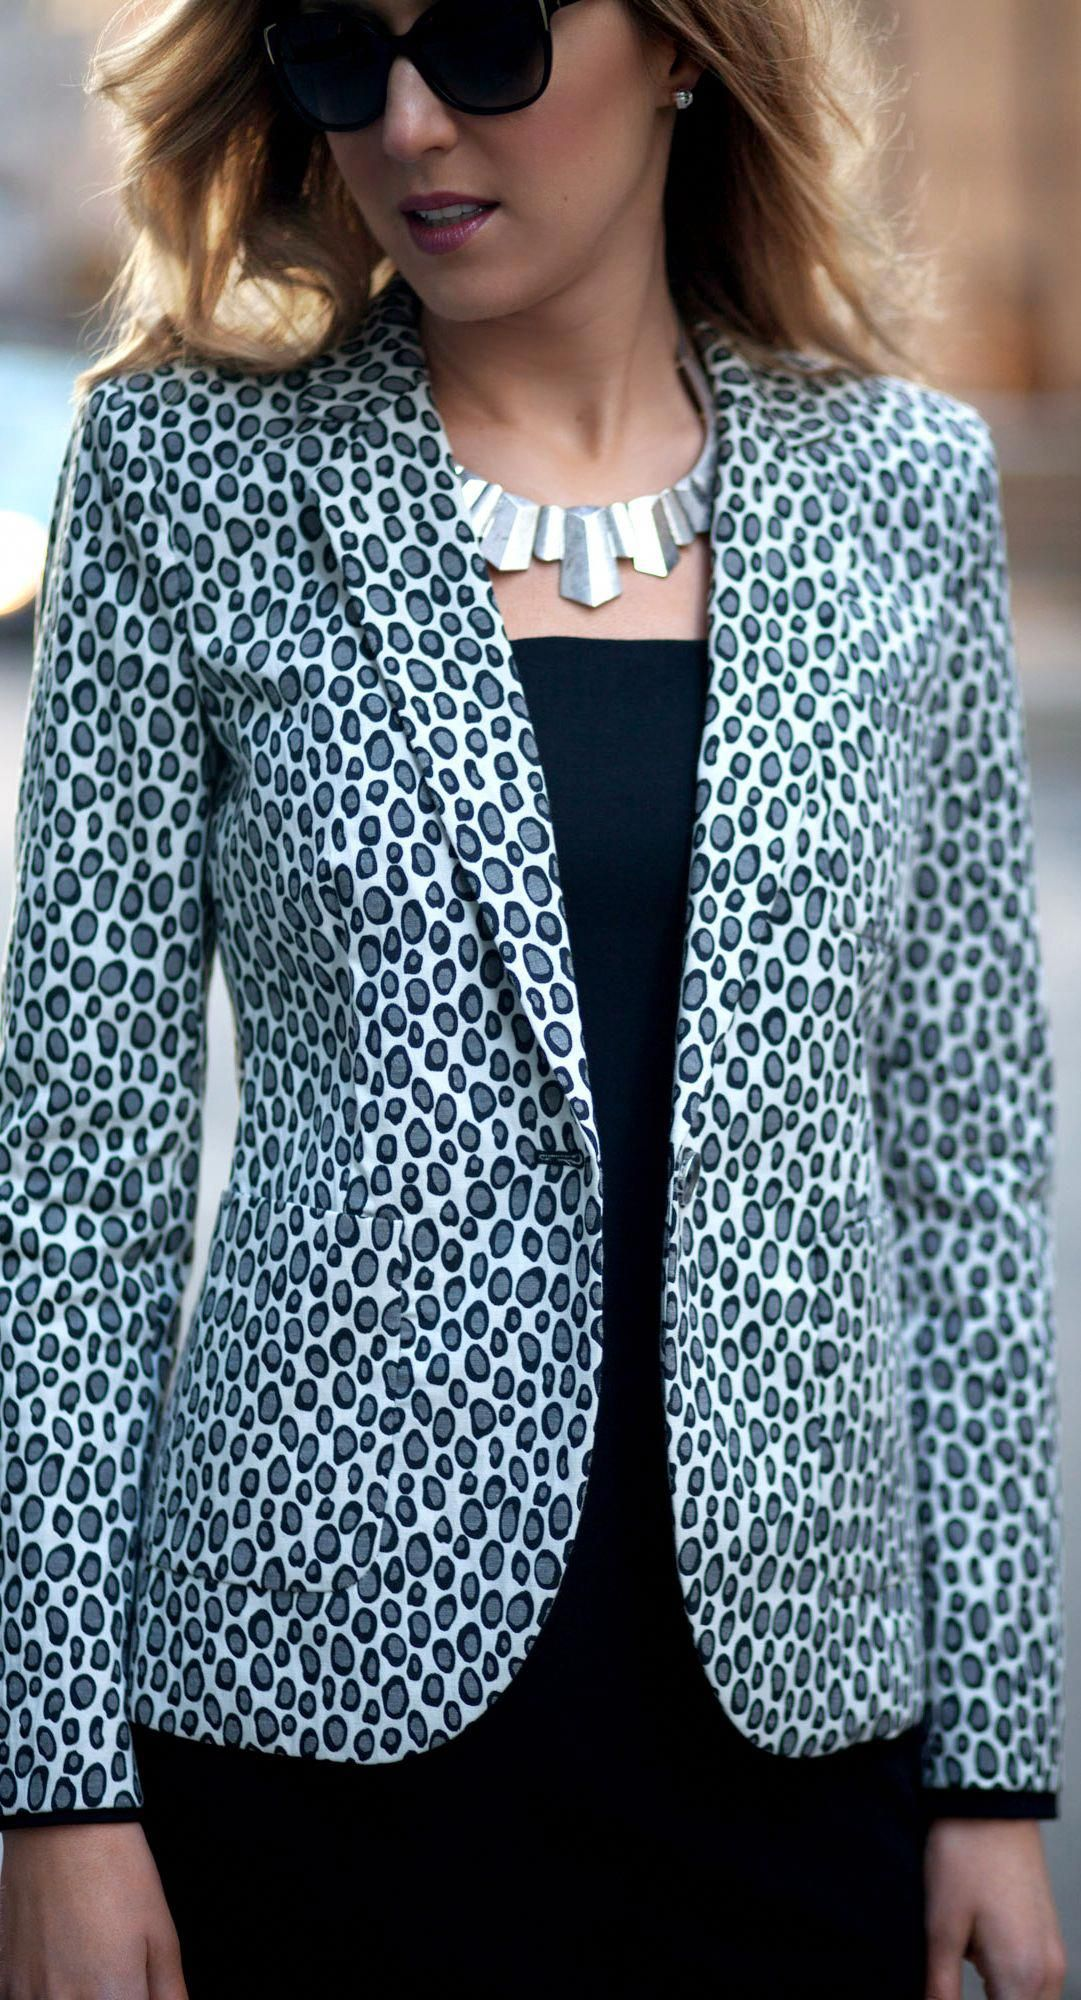 259405b304b5 The Classy Cubicle: Snow Leopard Blazer by Rachel Zoe  #teacherfashionover40animalprints